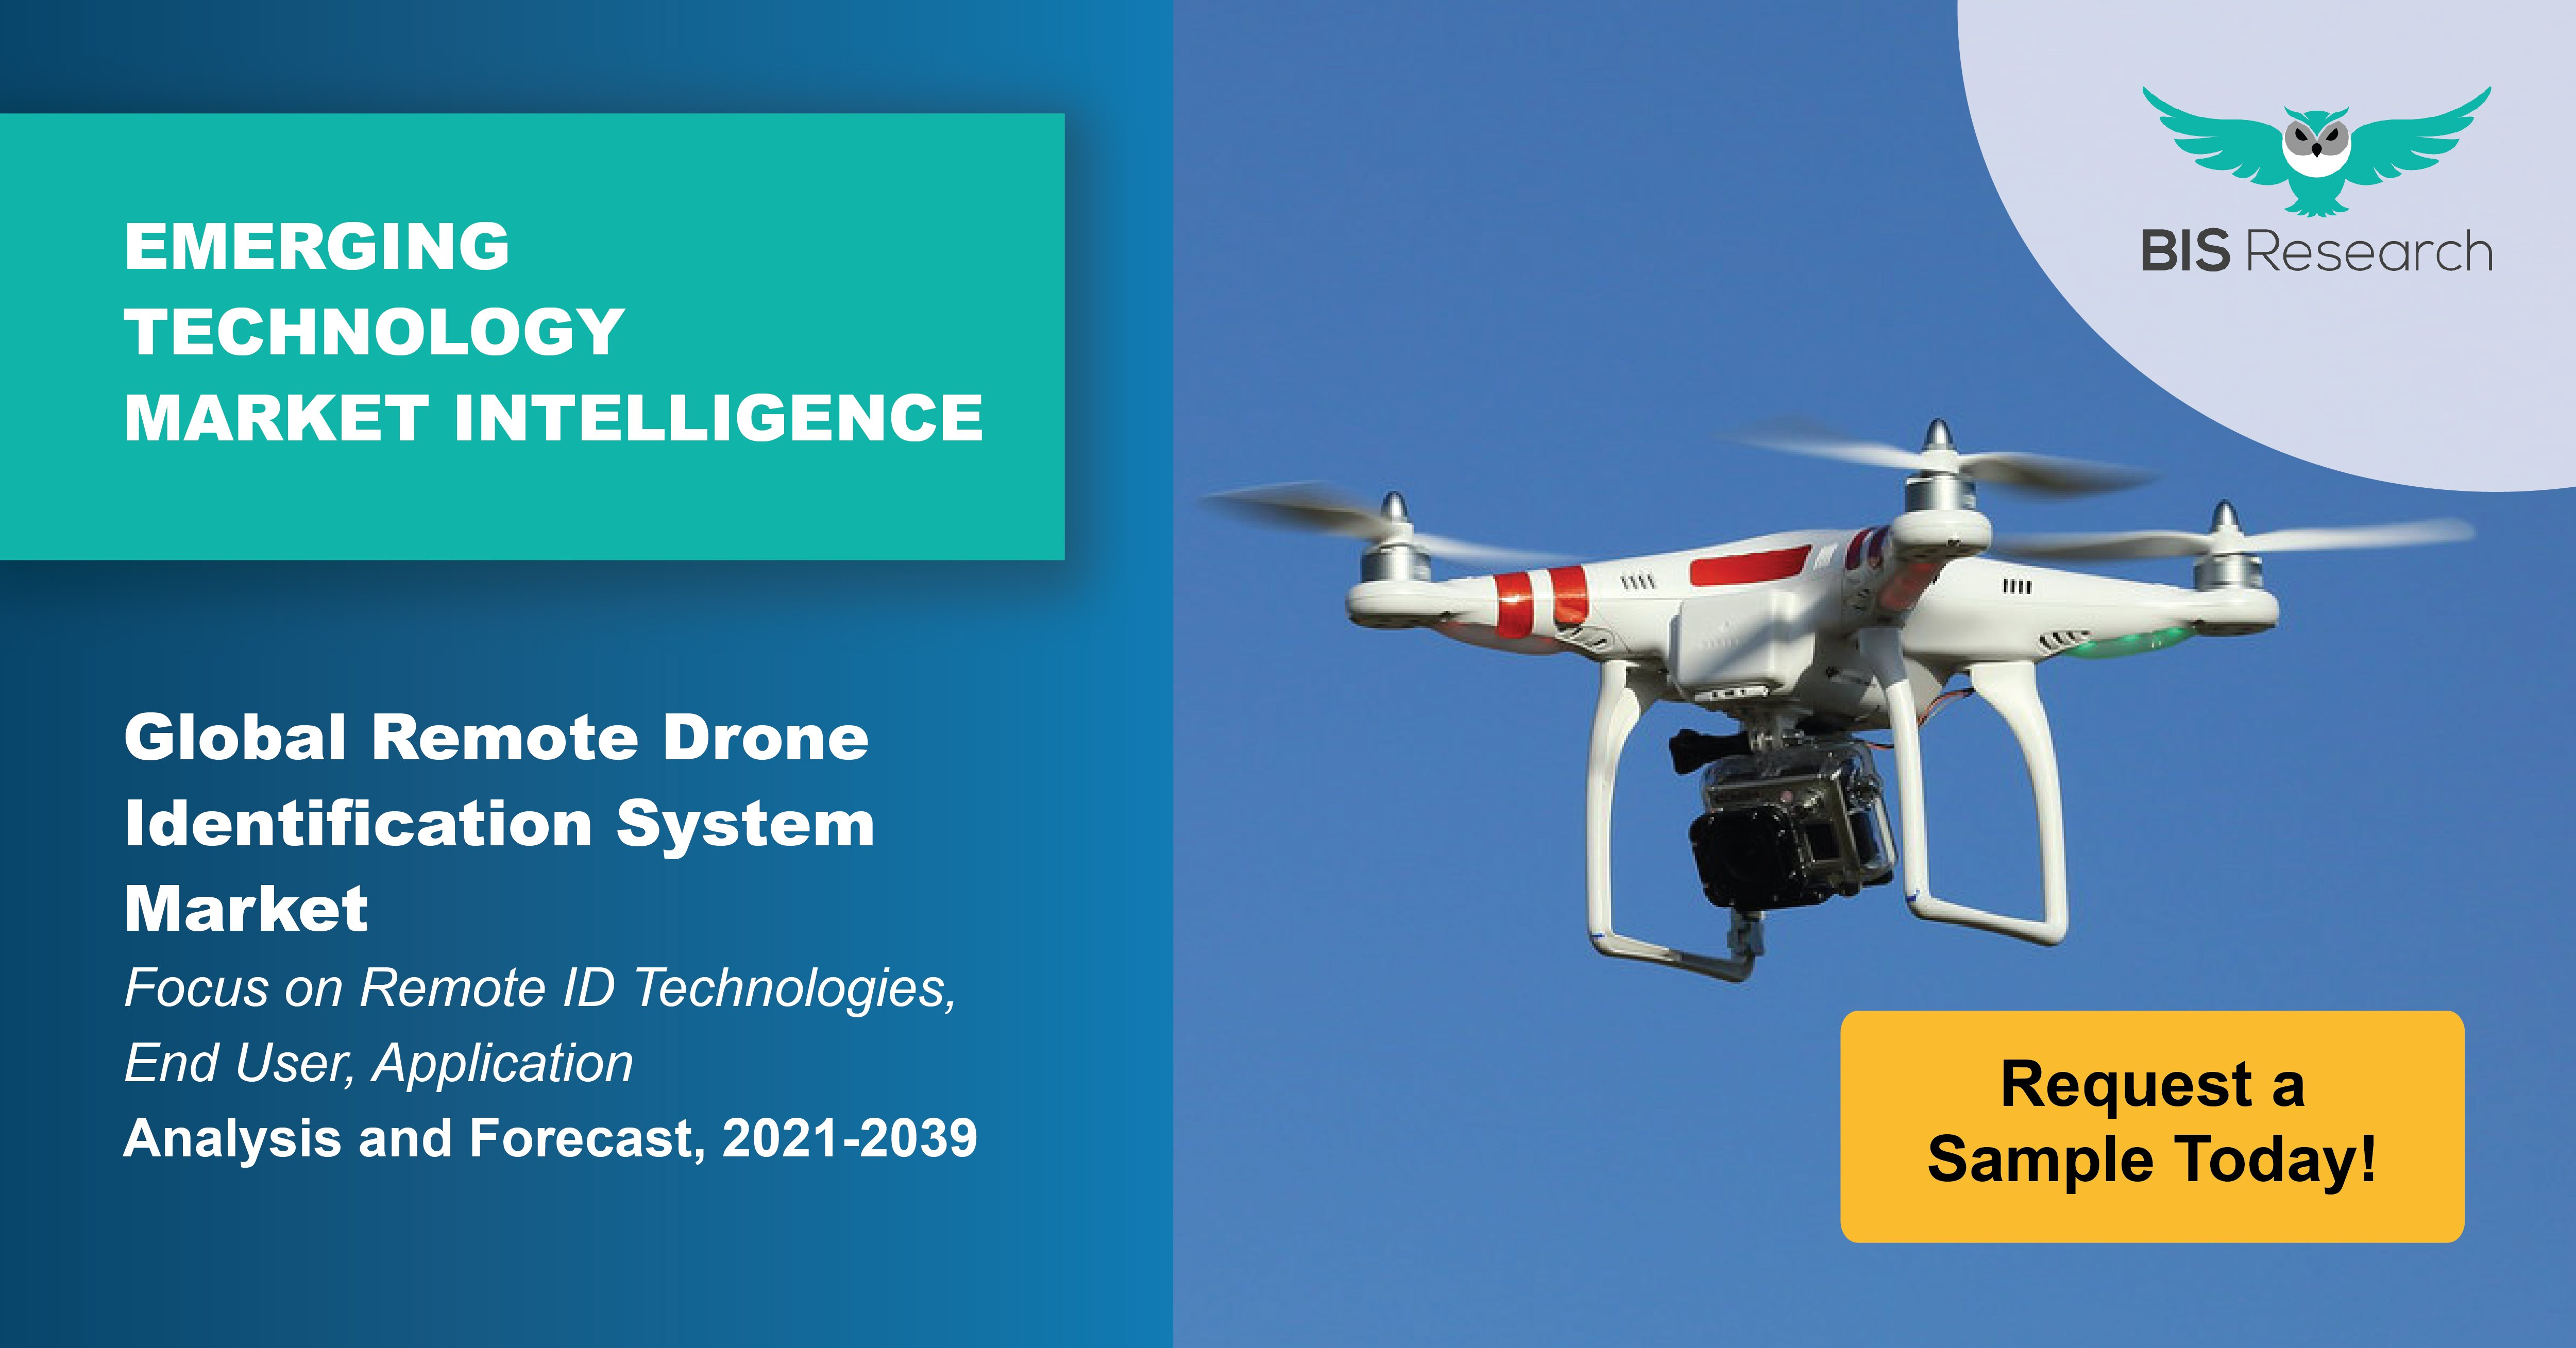 Global Remote Drone Identification System Market